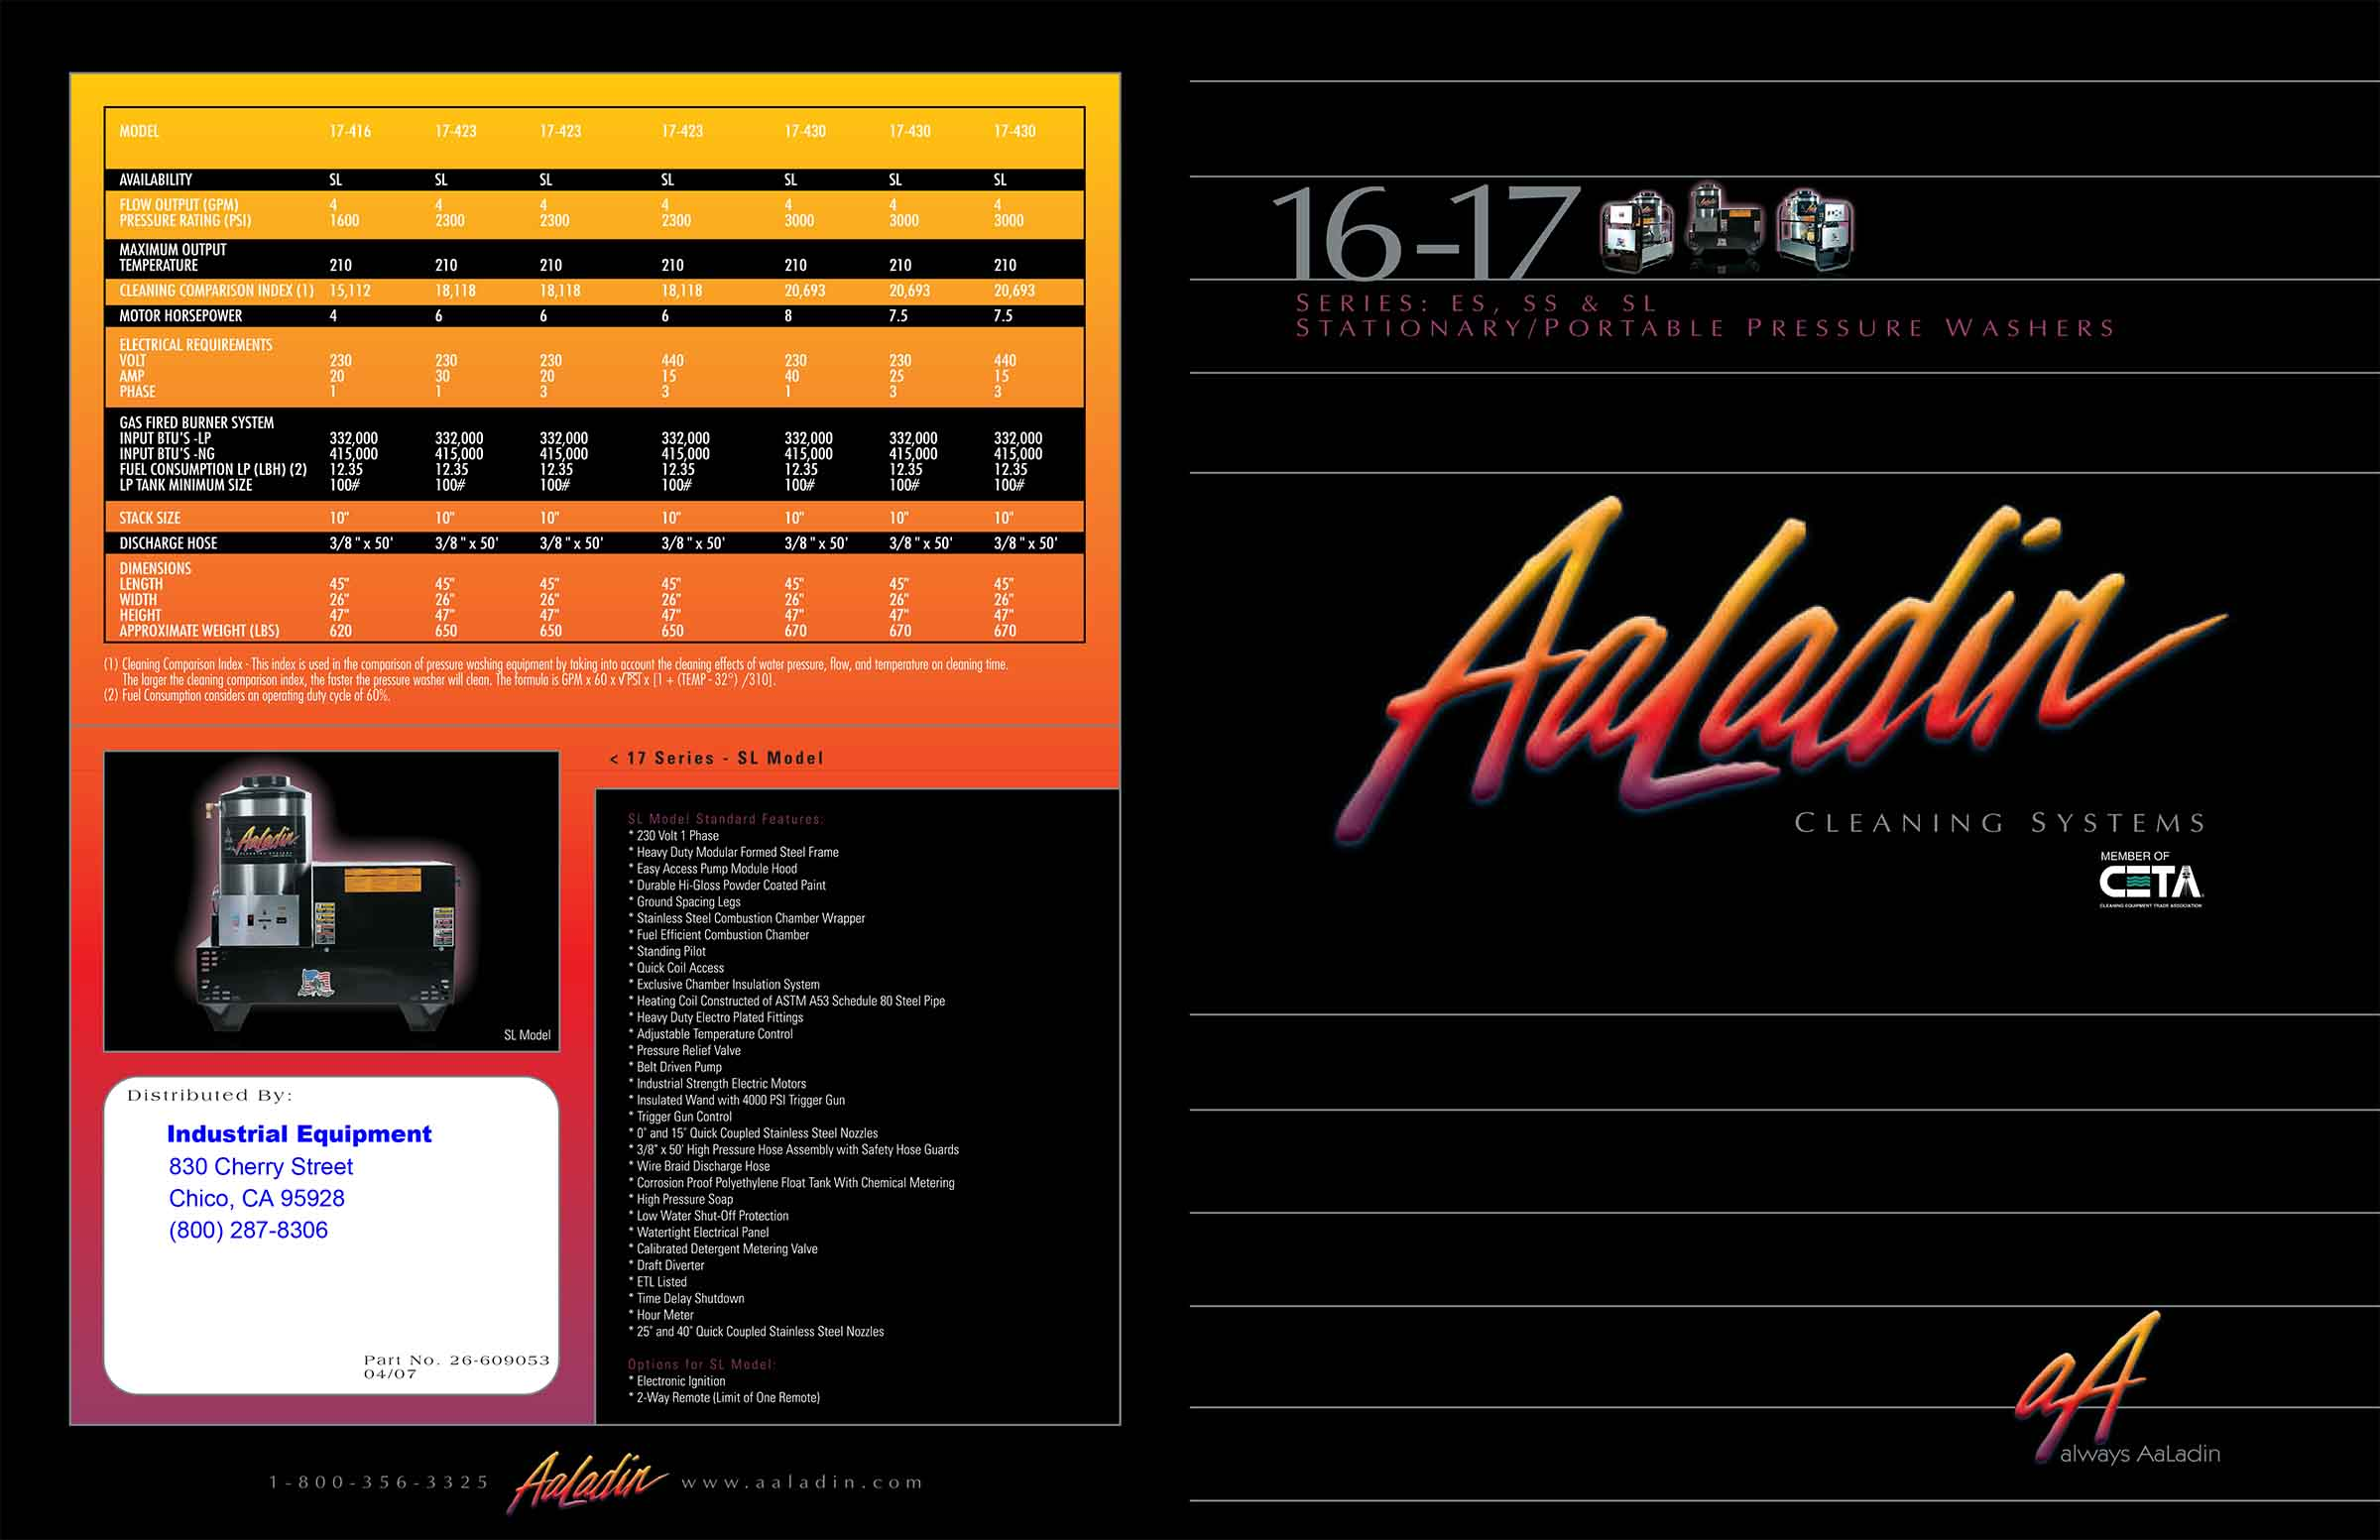 Aaladin 16-17 Series Cleaning System Pamphlet